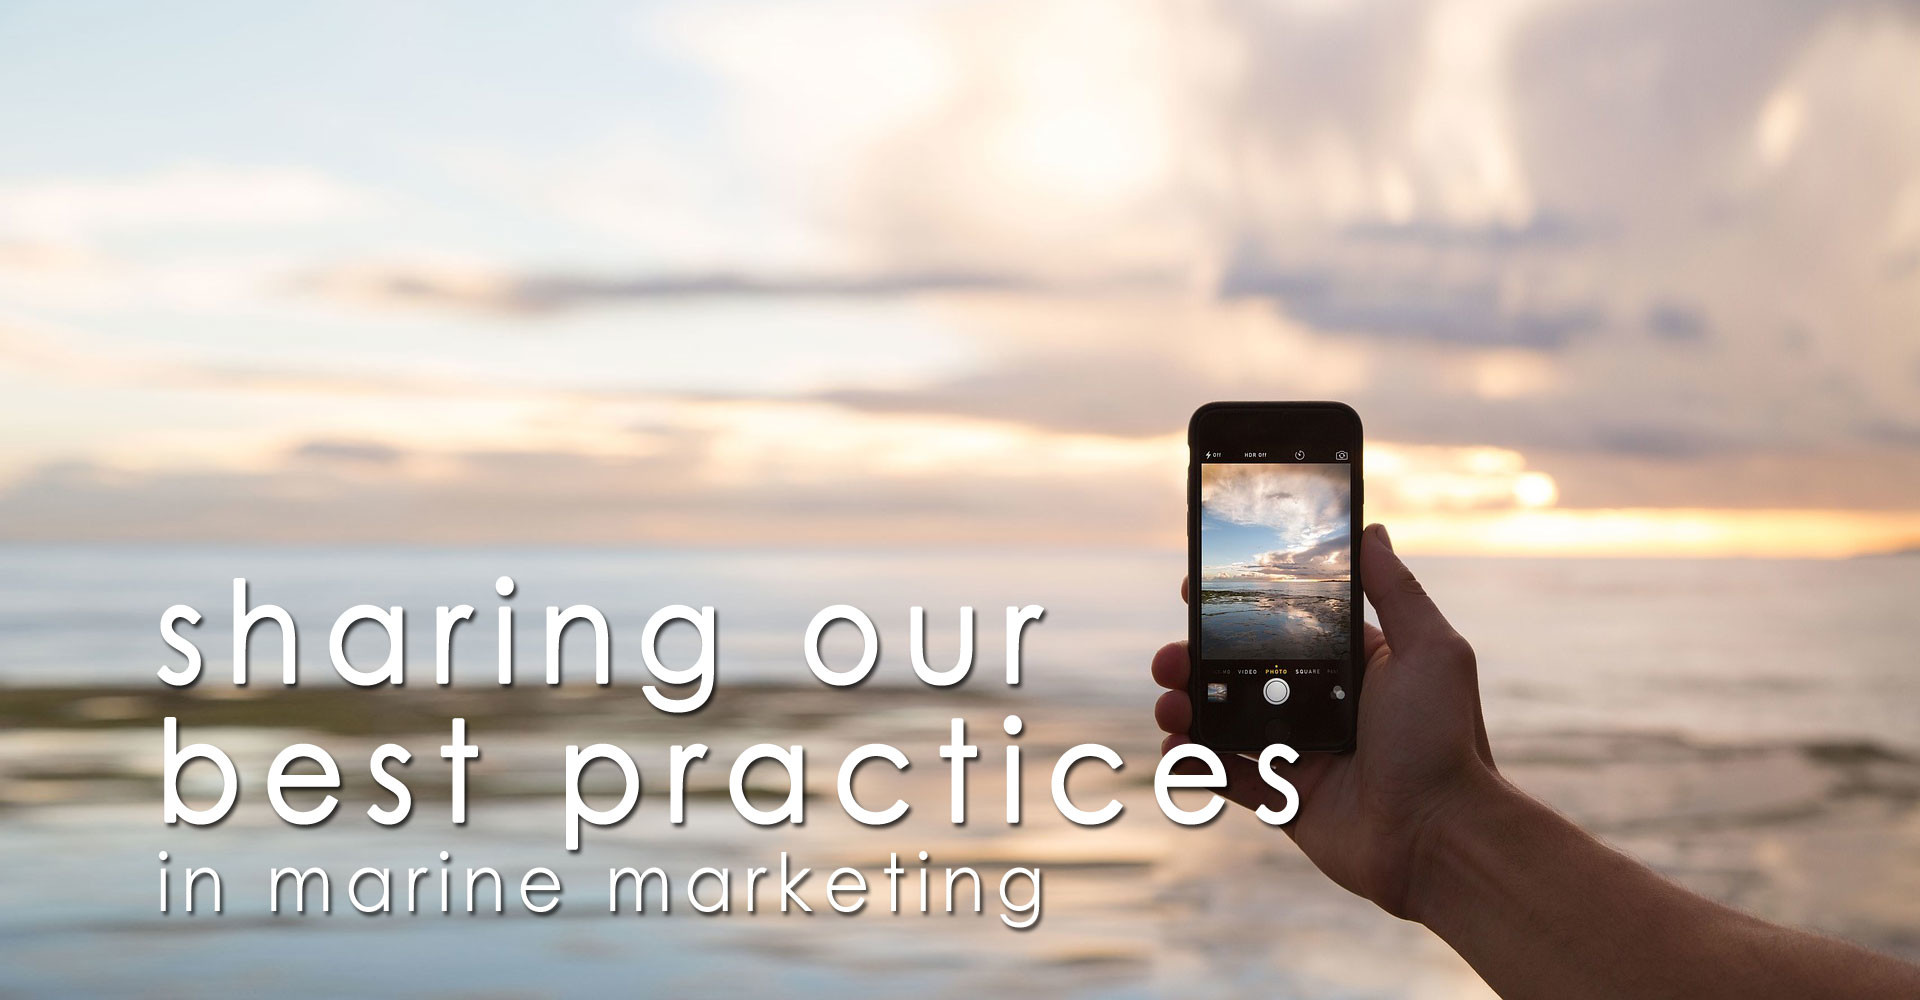 marine marketing best practices